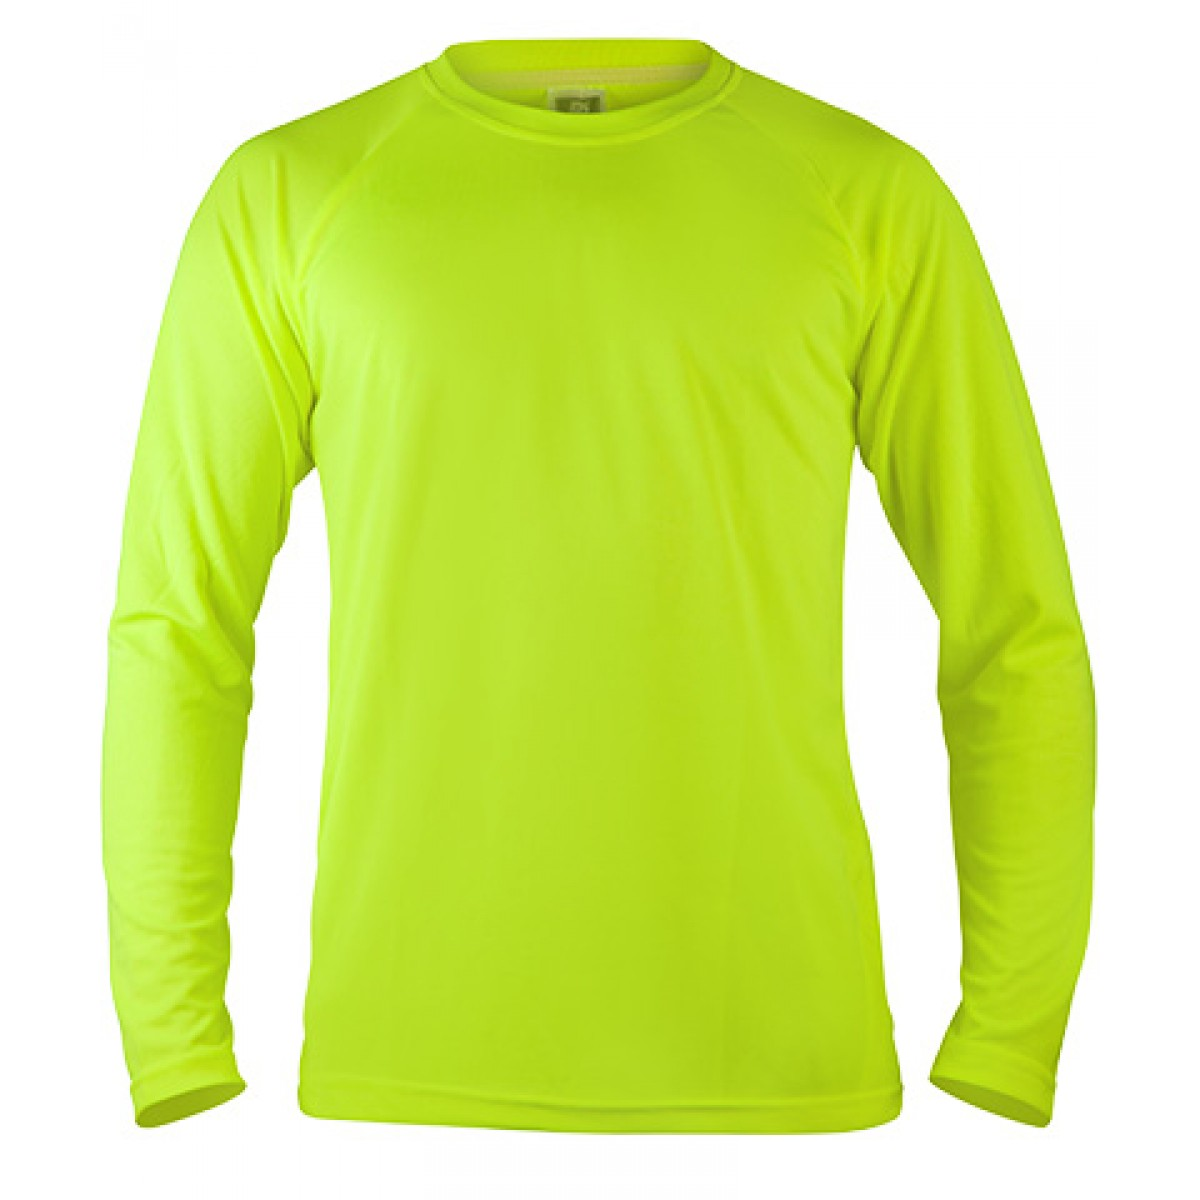 Long Sleeve Performance -Safety Green-S